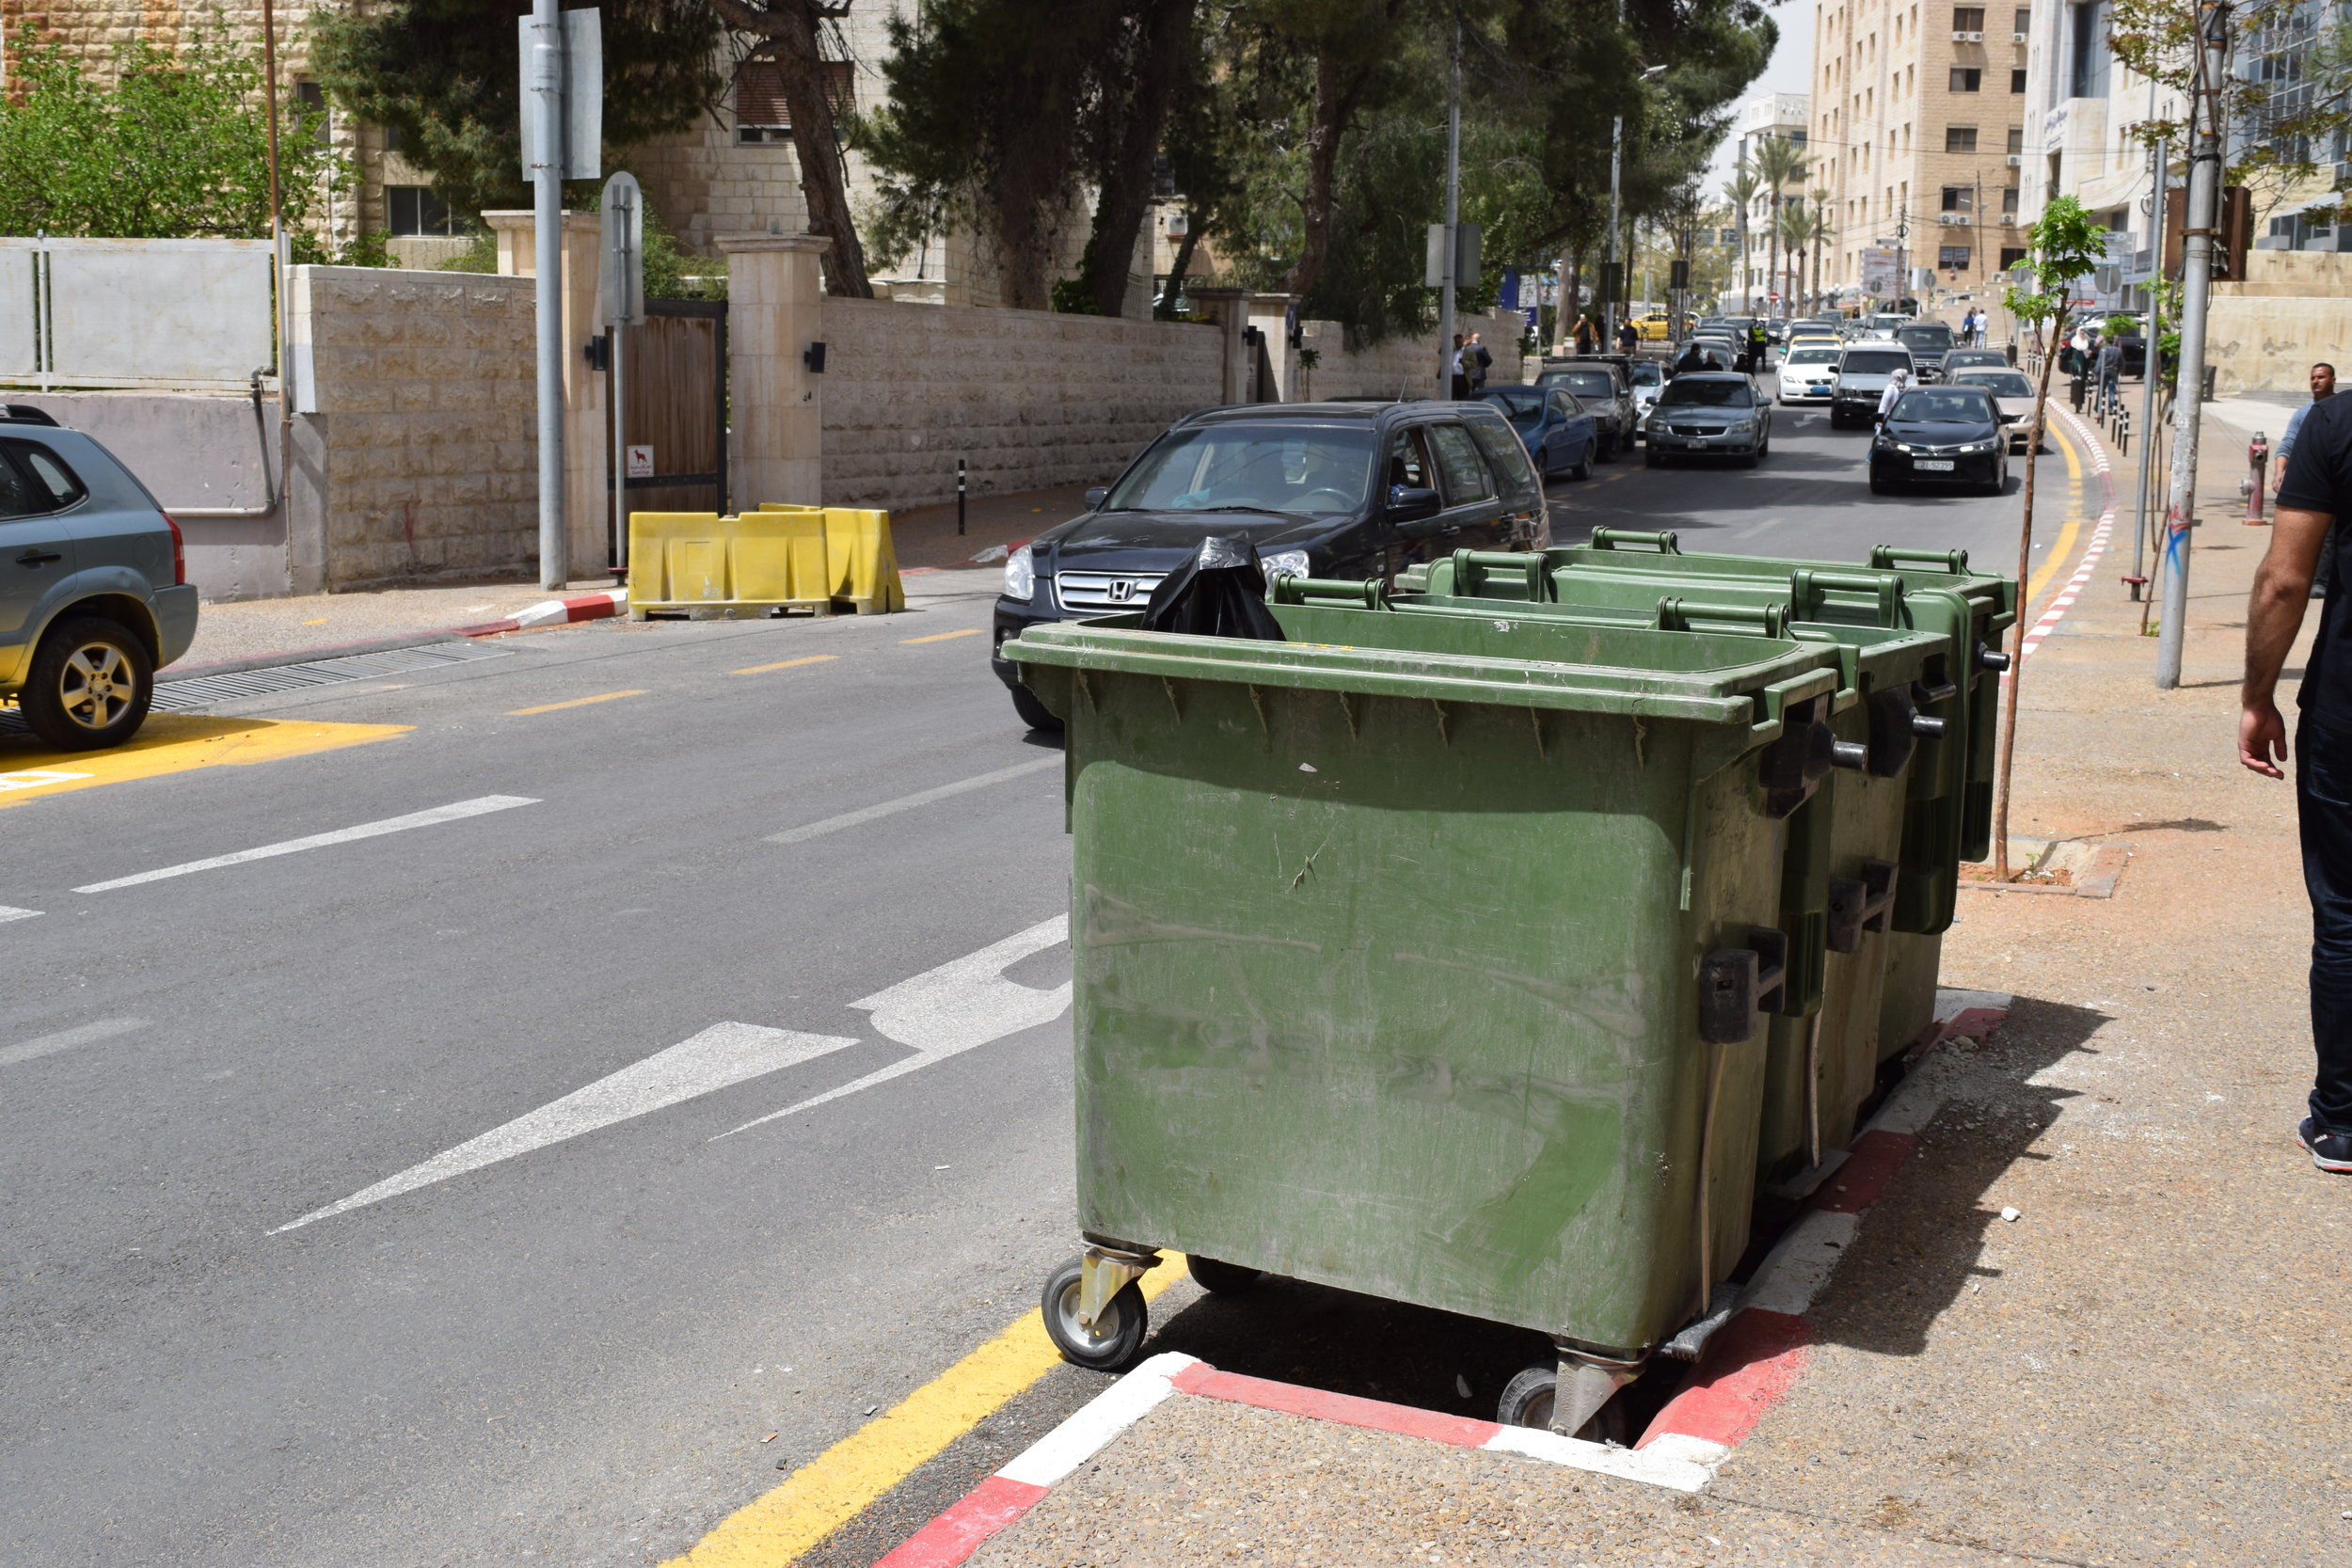 An image showing a designated area for dumpsters.